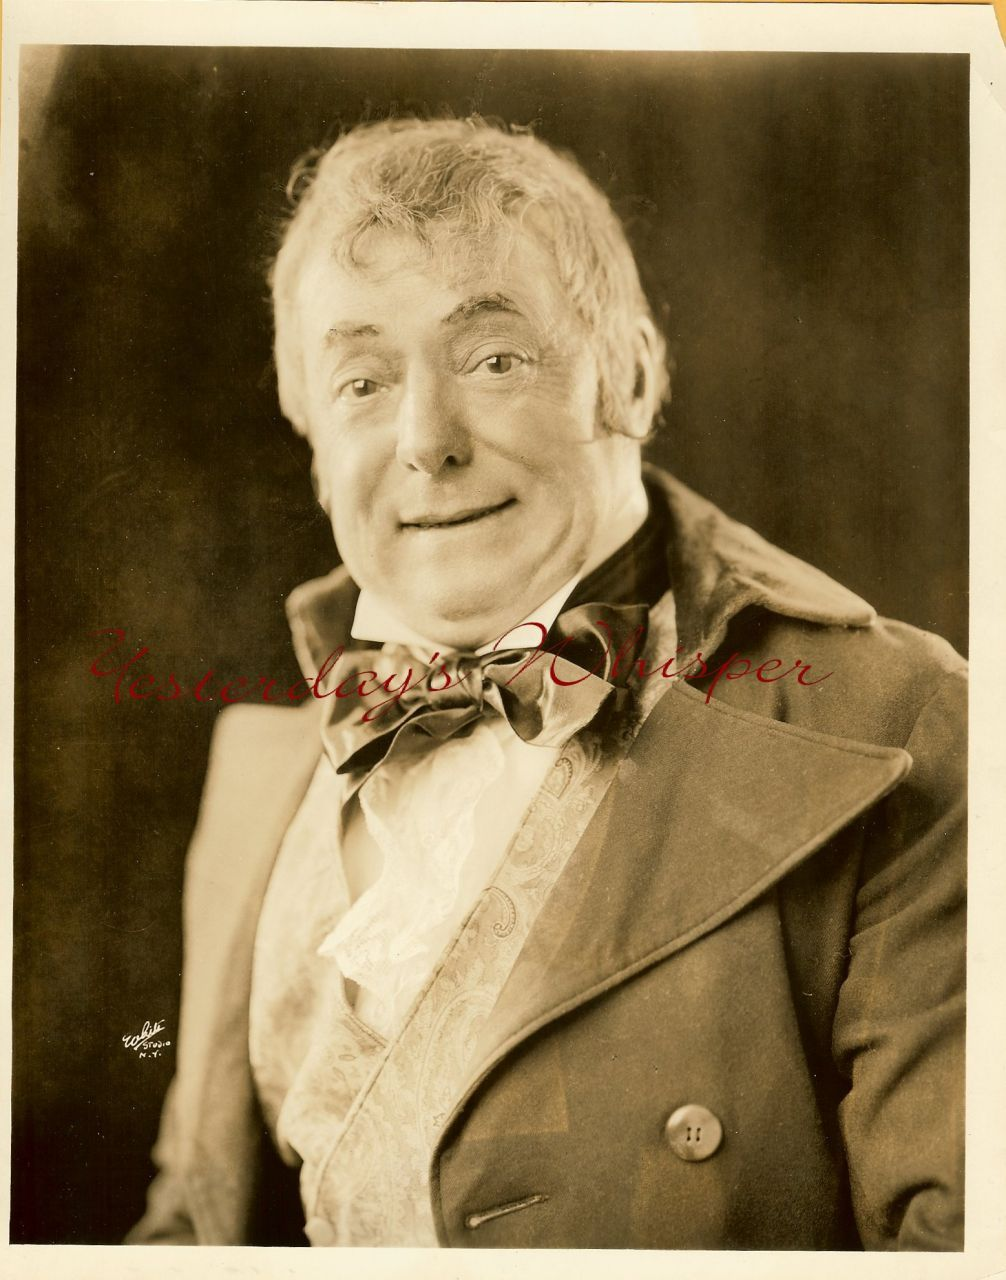 Teddy WEBB Blossom TIME ORG White Studio PHOTO G480